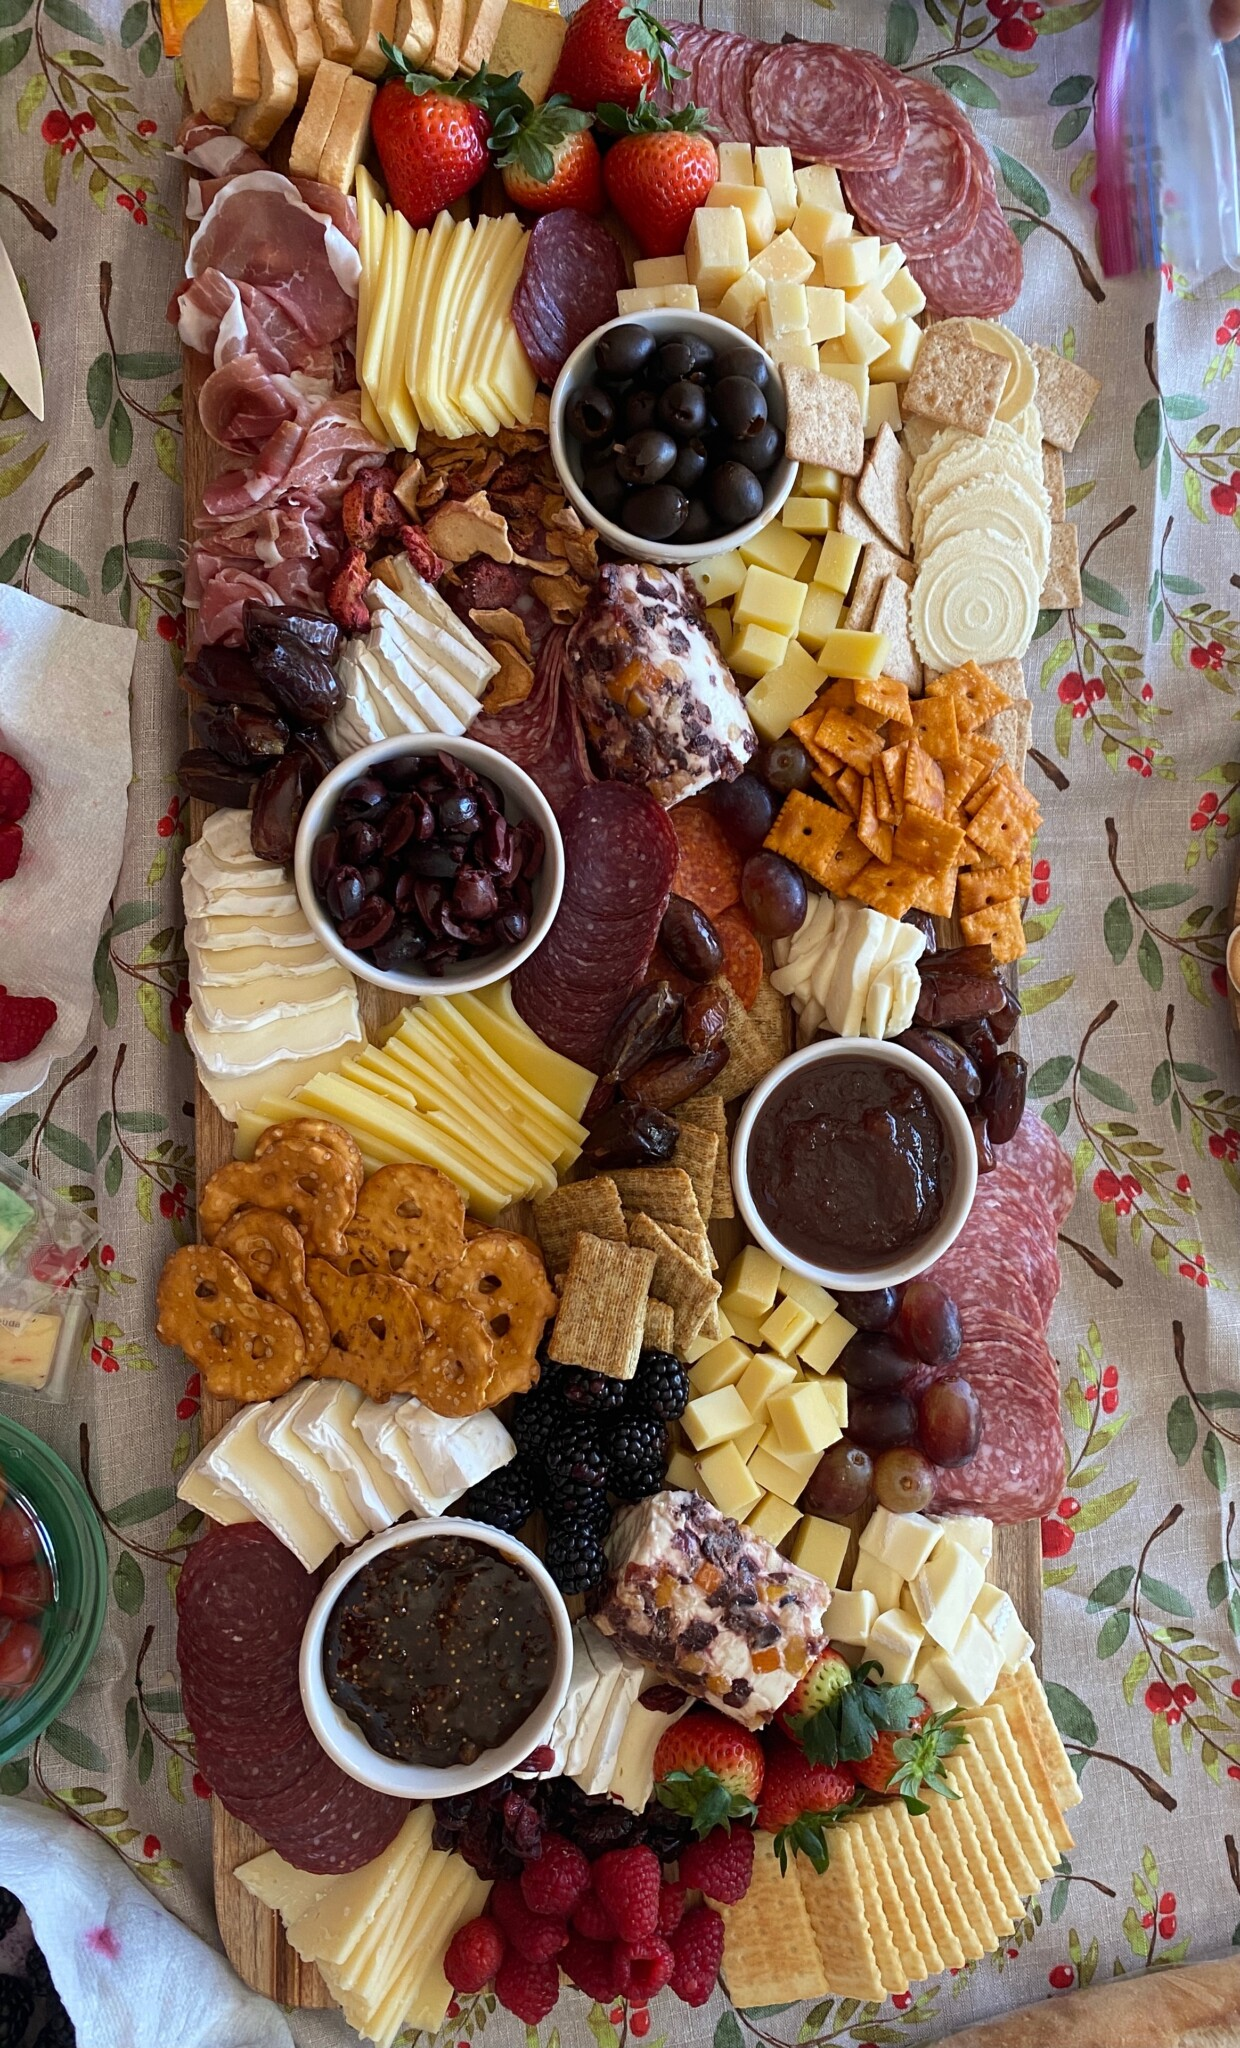 Extra large charcuterie board with meats and cheeses